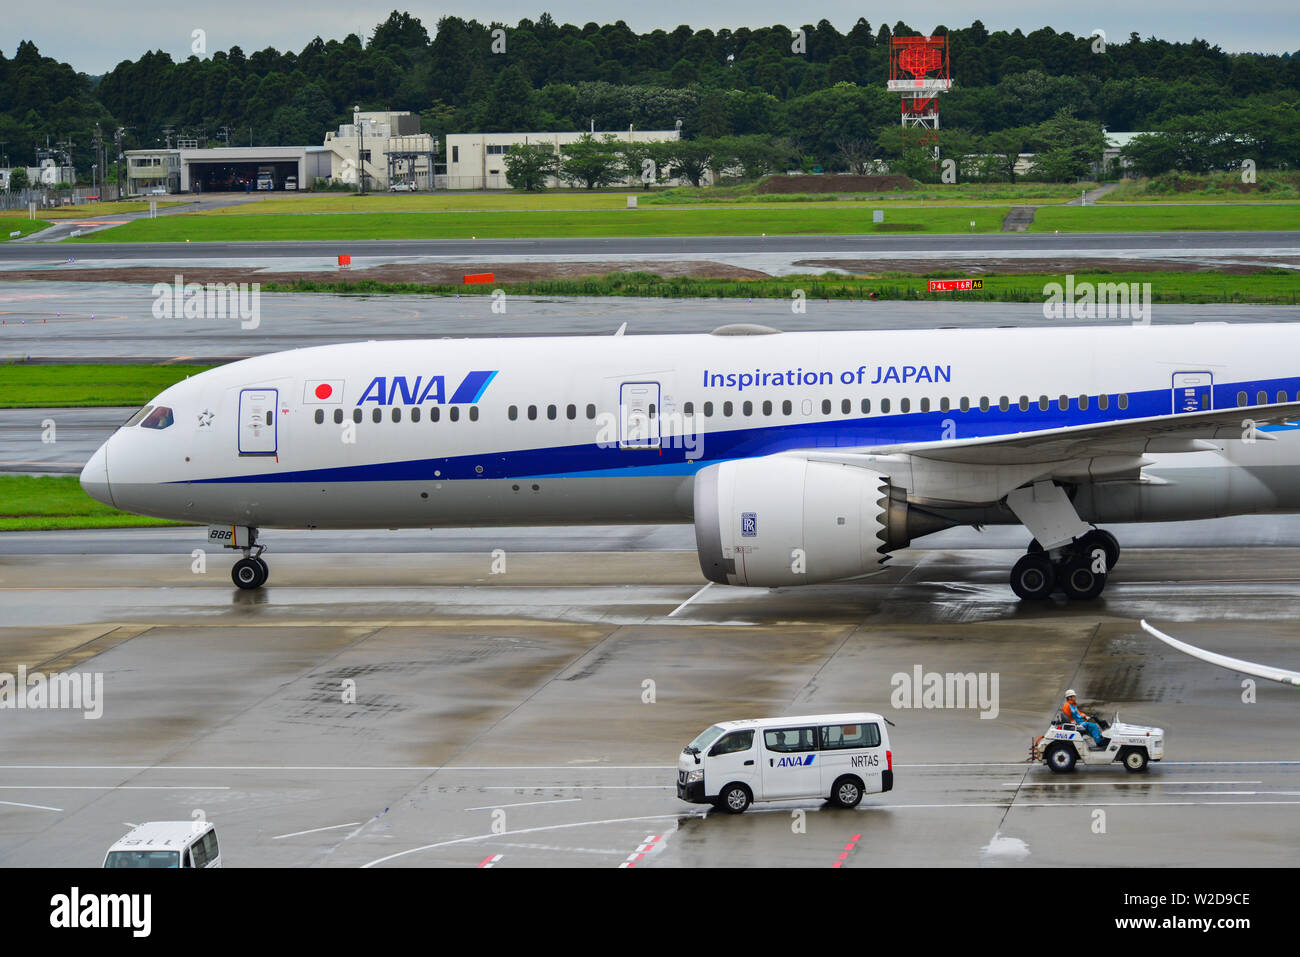 Tokyo, Japan - Jul 4, 2019. JA888A All Nippon Airways Boeing 787-9 Dreamliner taxiing at Narita Airport (NRT). - Stock Image